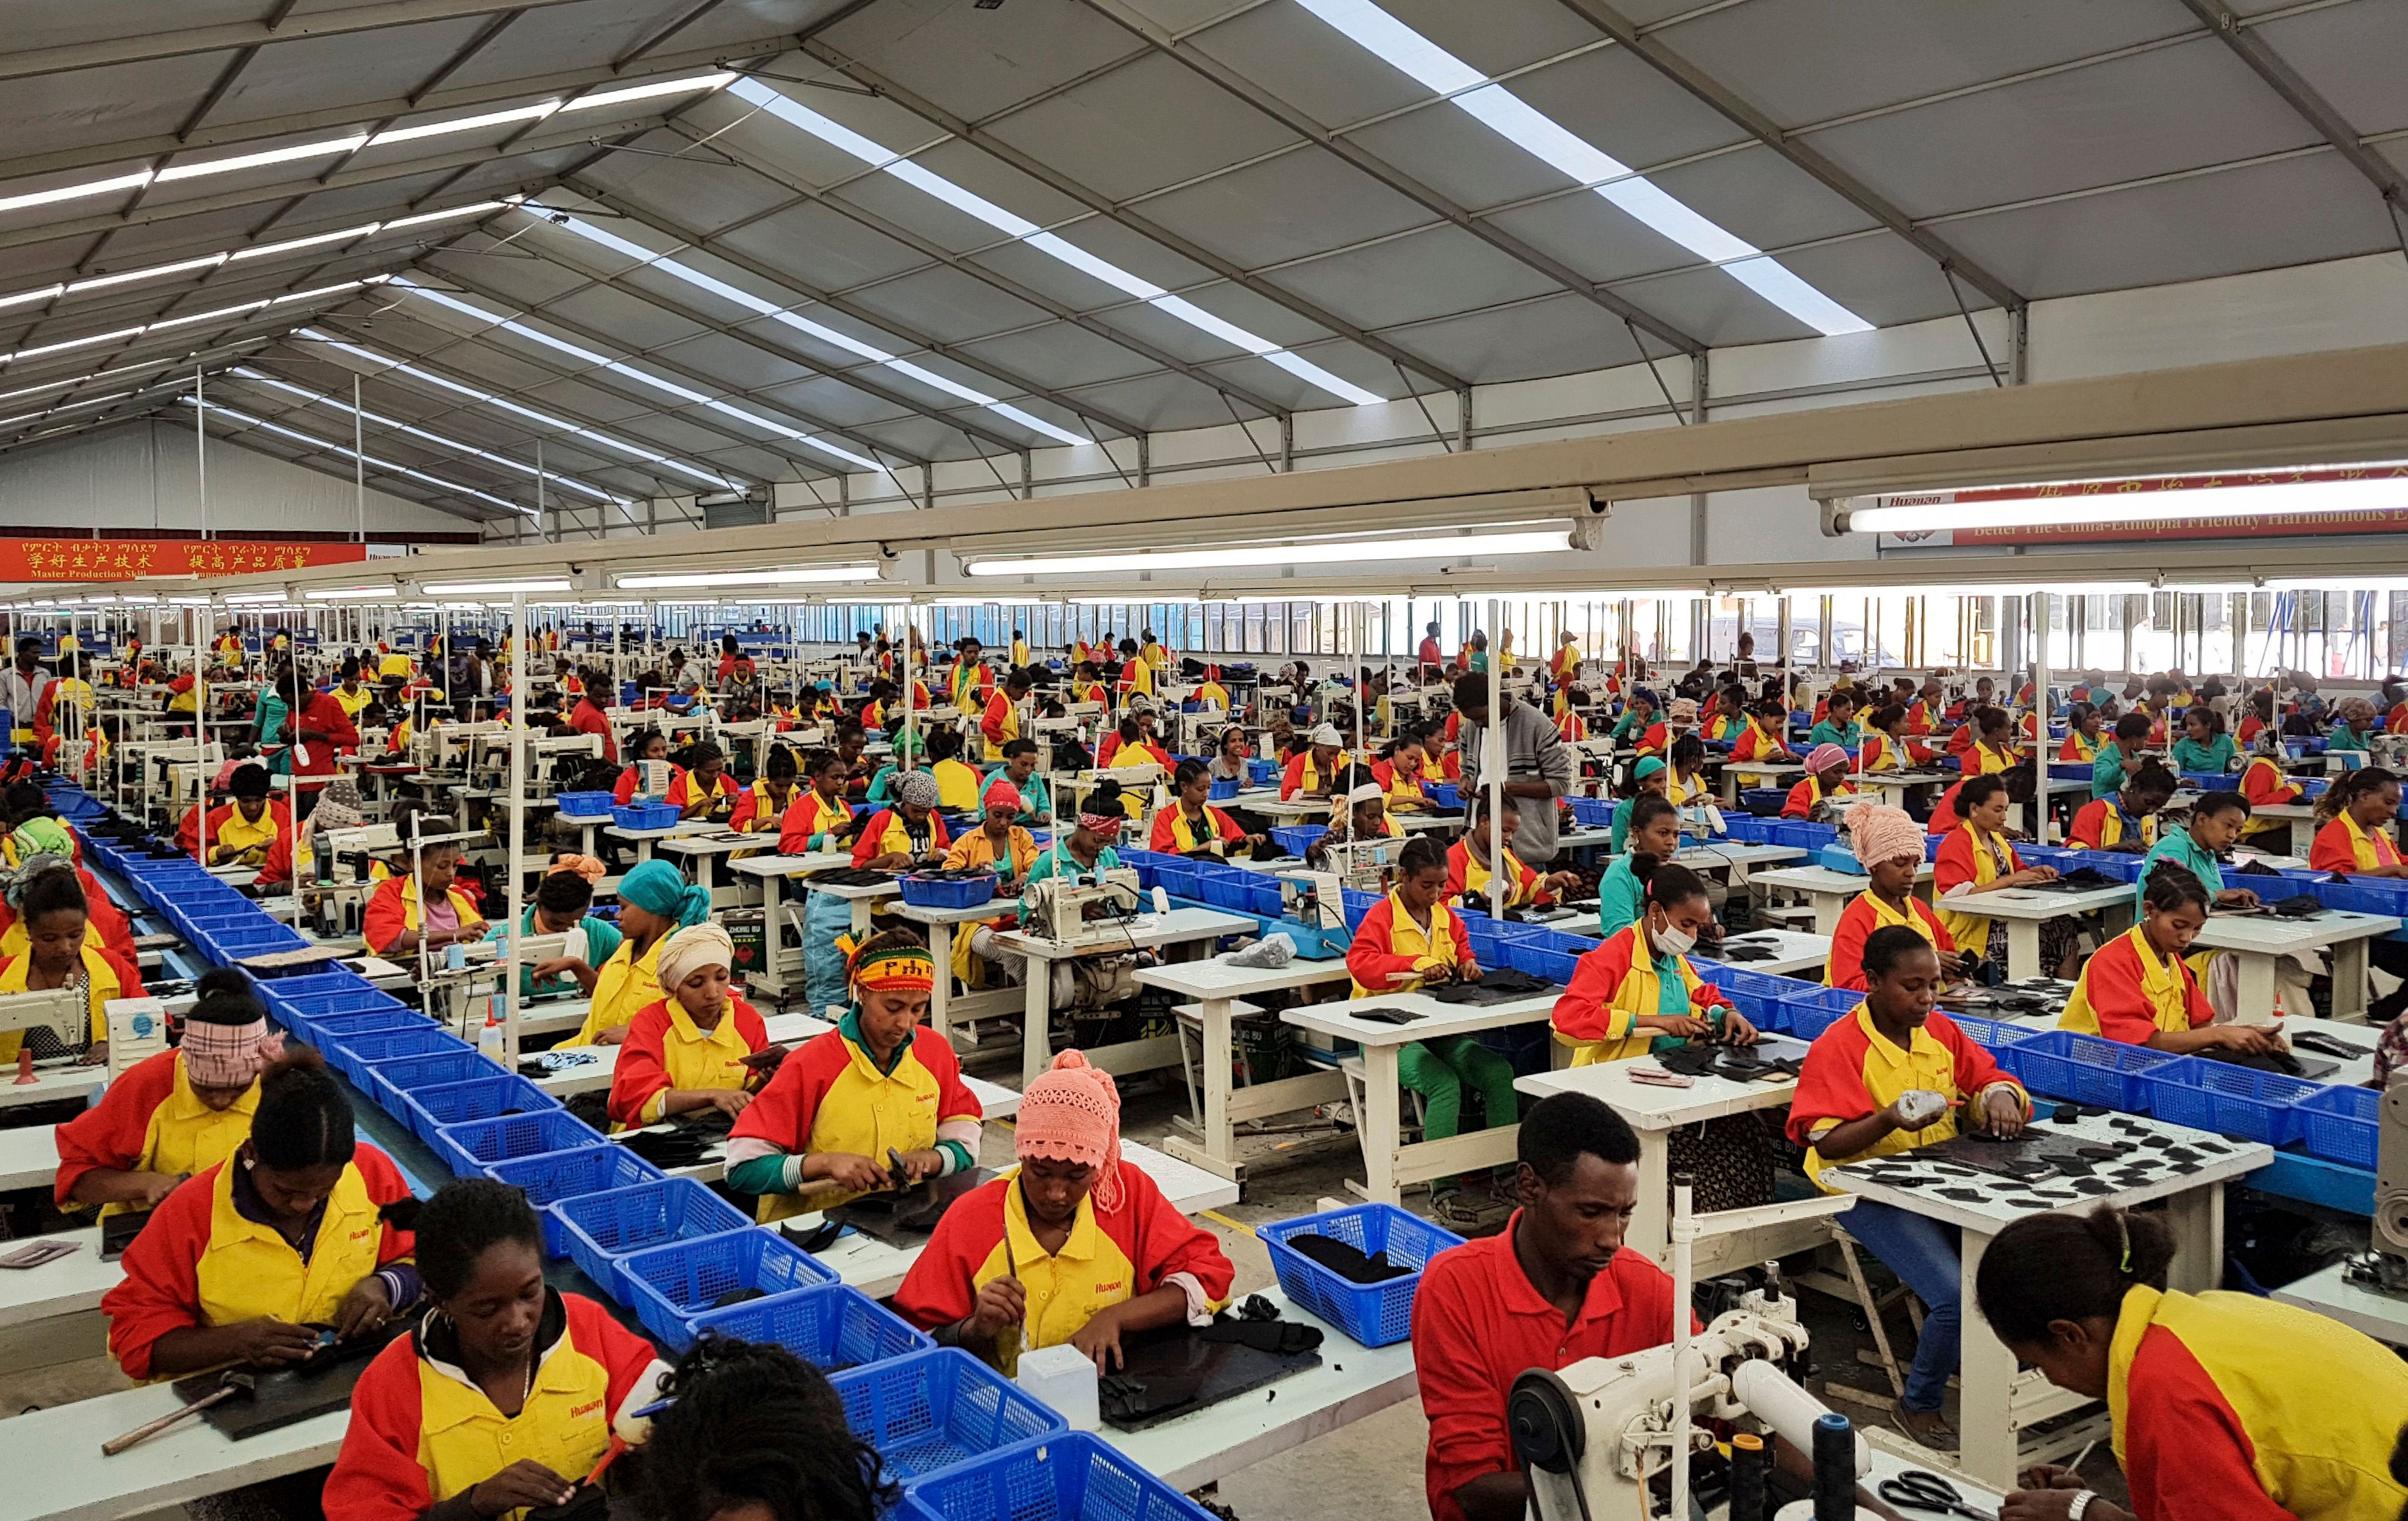 Ethiopian factory workers make shoes at the Chinese company Huajian's plant in Addis Ababa, Ethiopia. Workers from at Ganzhou Huajian International Shoe City Co., a southeastern China factory used by Ivanka Trump and other fashion brands, say they've faced long hours, low pay and verbal abuse. Huajian, meanwhile, has been moving production to Ethiopia, where workers make around $100 a month, a fraction of what they pay in China, according to Song Yiping, a manager at Huajian's Ethiopian factory, who spoke to the Associated Press in JanuaryChina Ivanka Trump Factory Life, Addis Ababa, Ethiopia - 05 Jan 2017